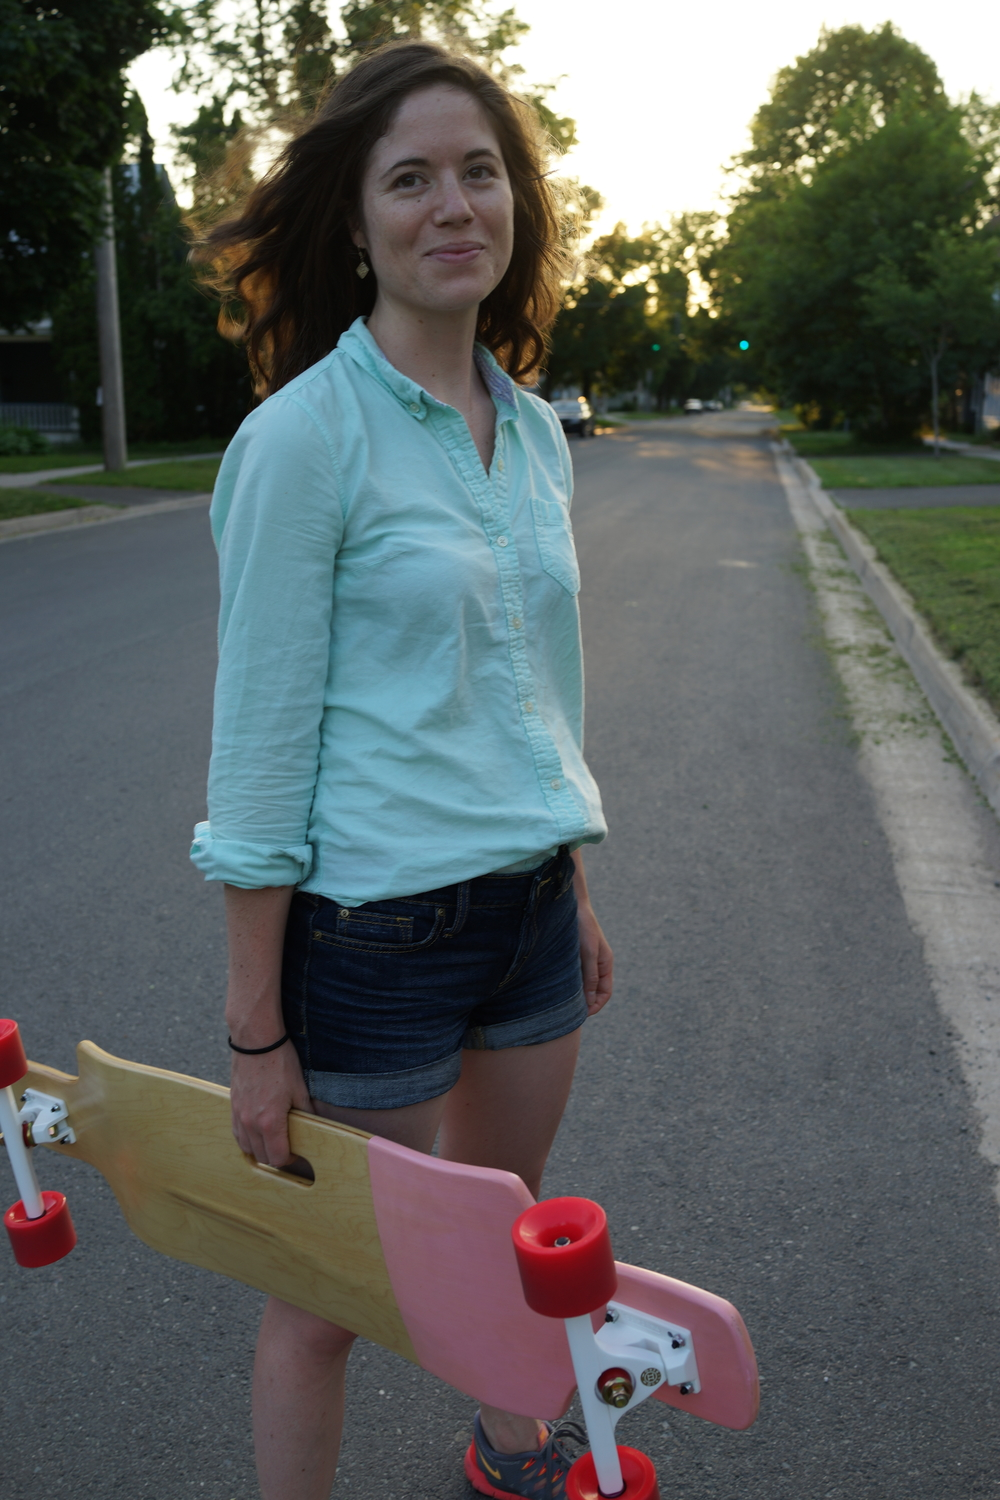 Carrying my trusty strawberry shortcake longboard by Limbic in Fredericton, NB